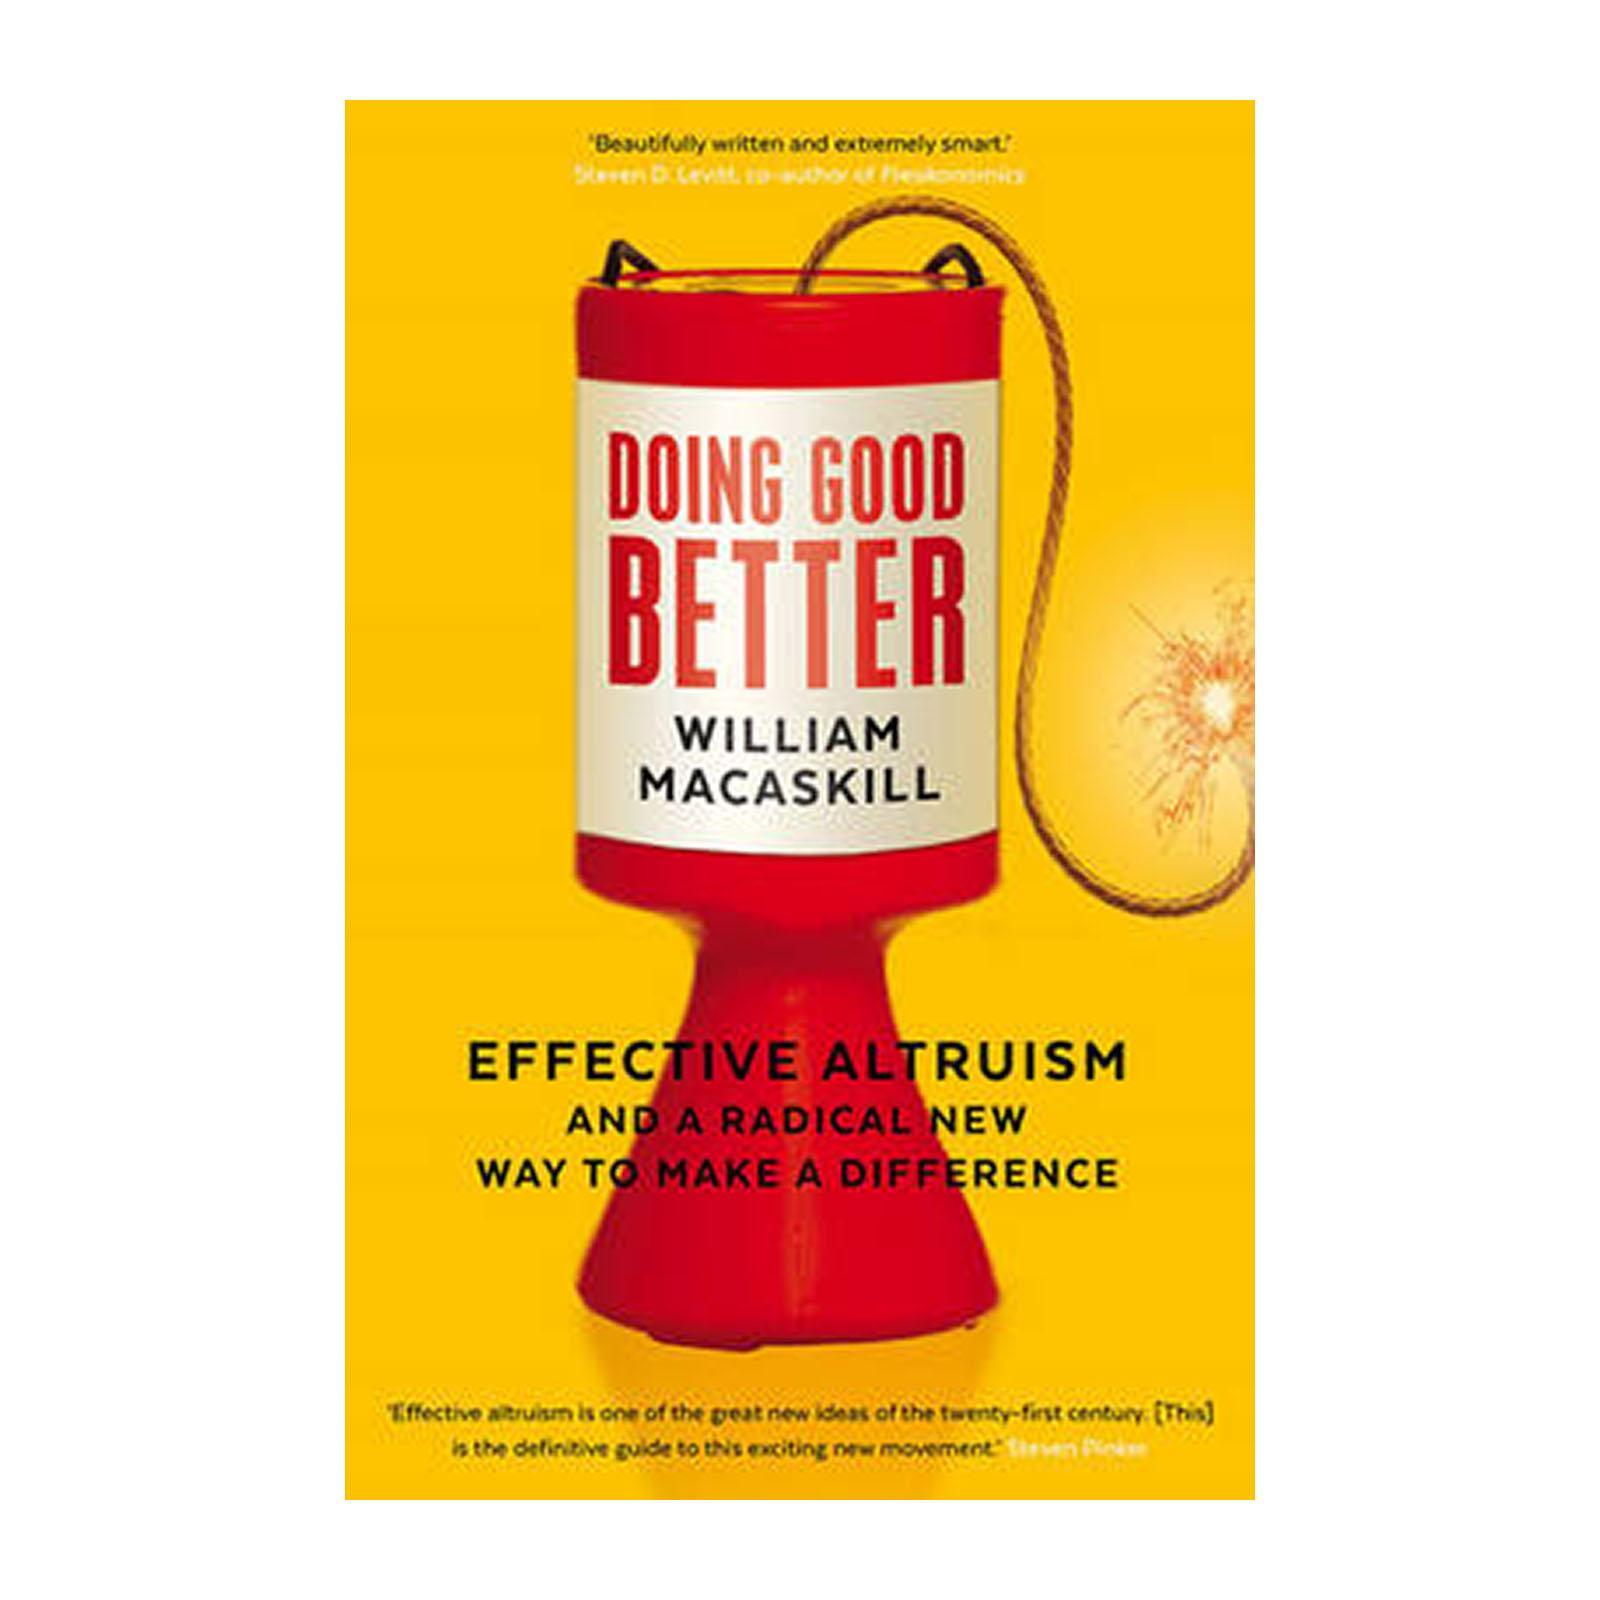 Doing Good Better: Effective Altruism And A Radical New Way To Make A Difference (Paperback)